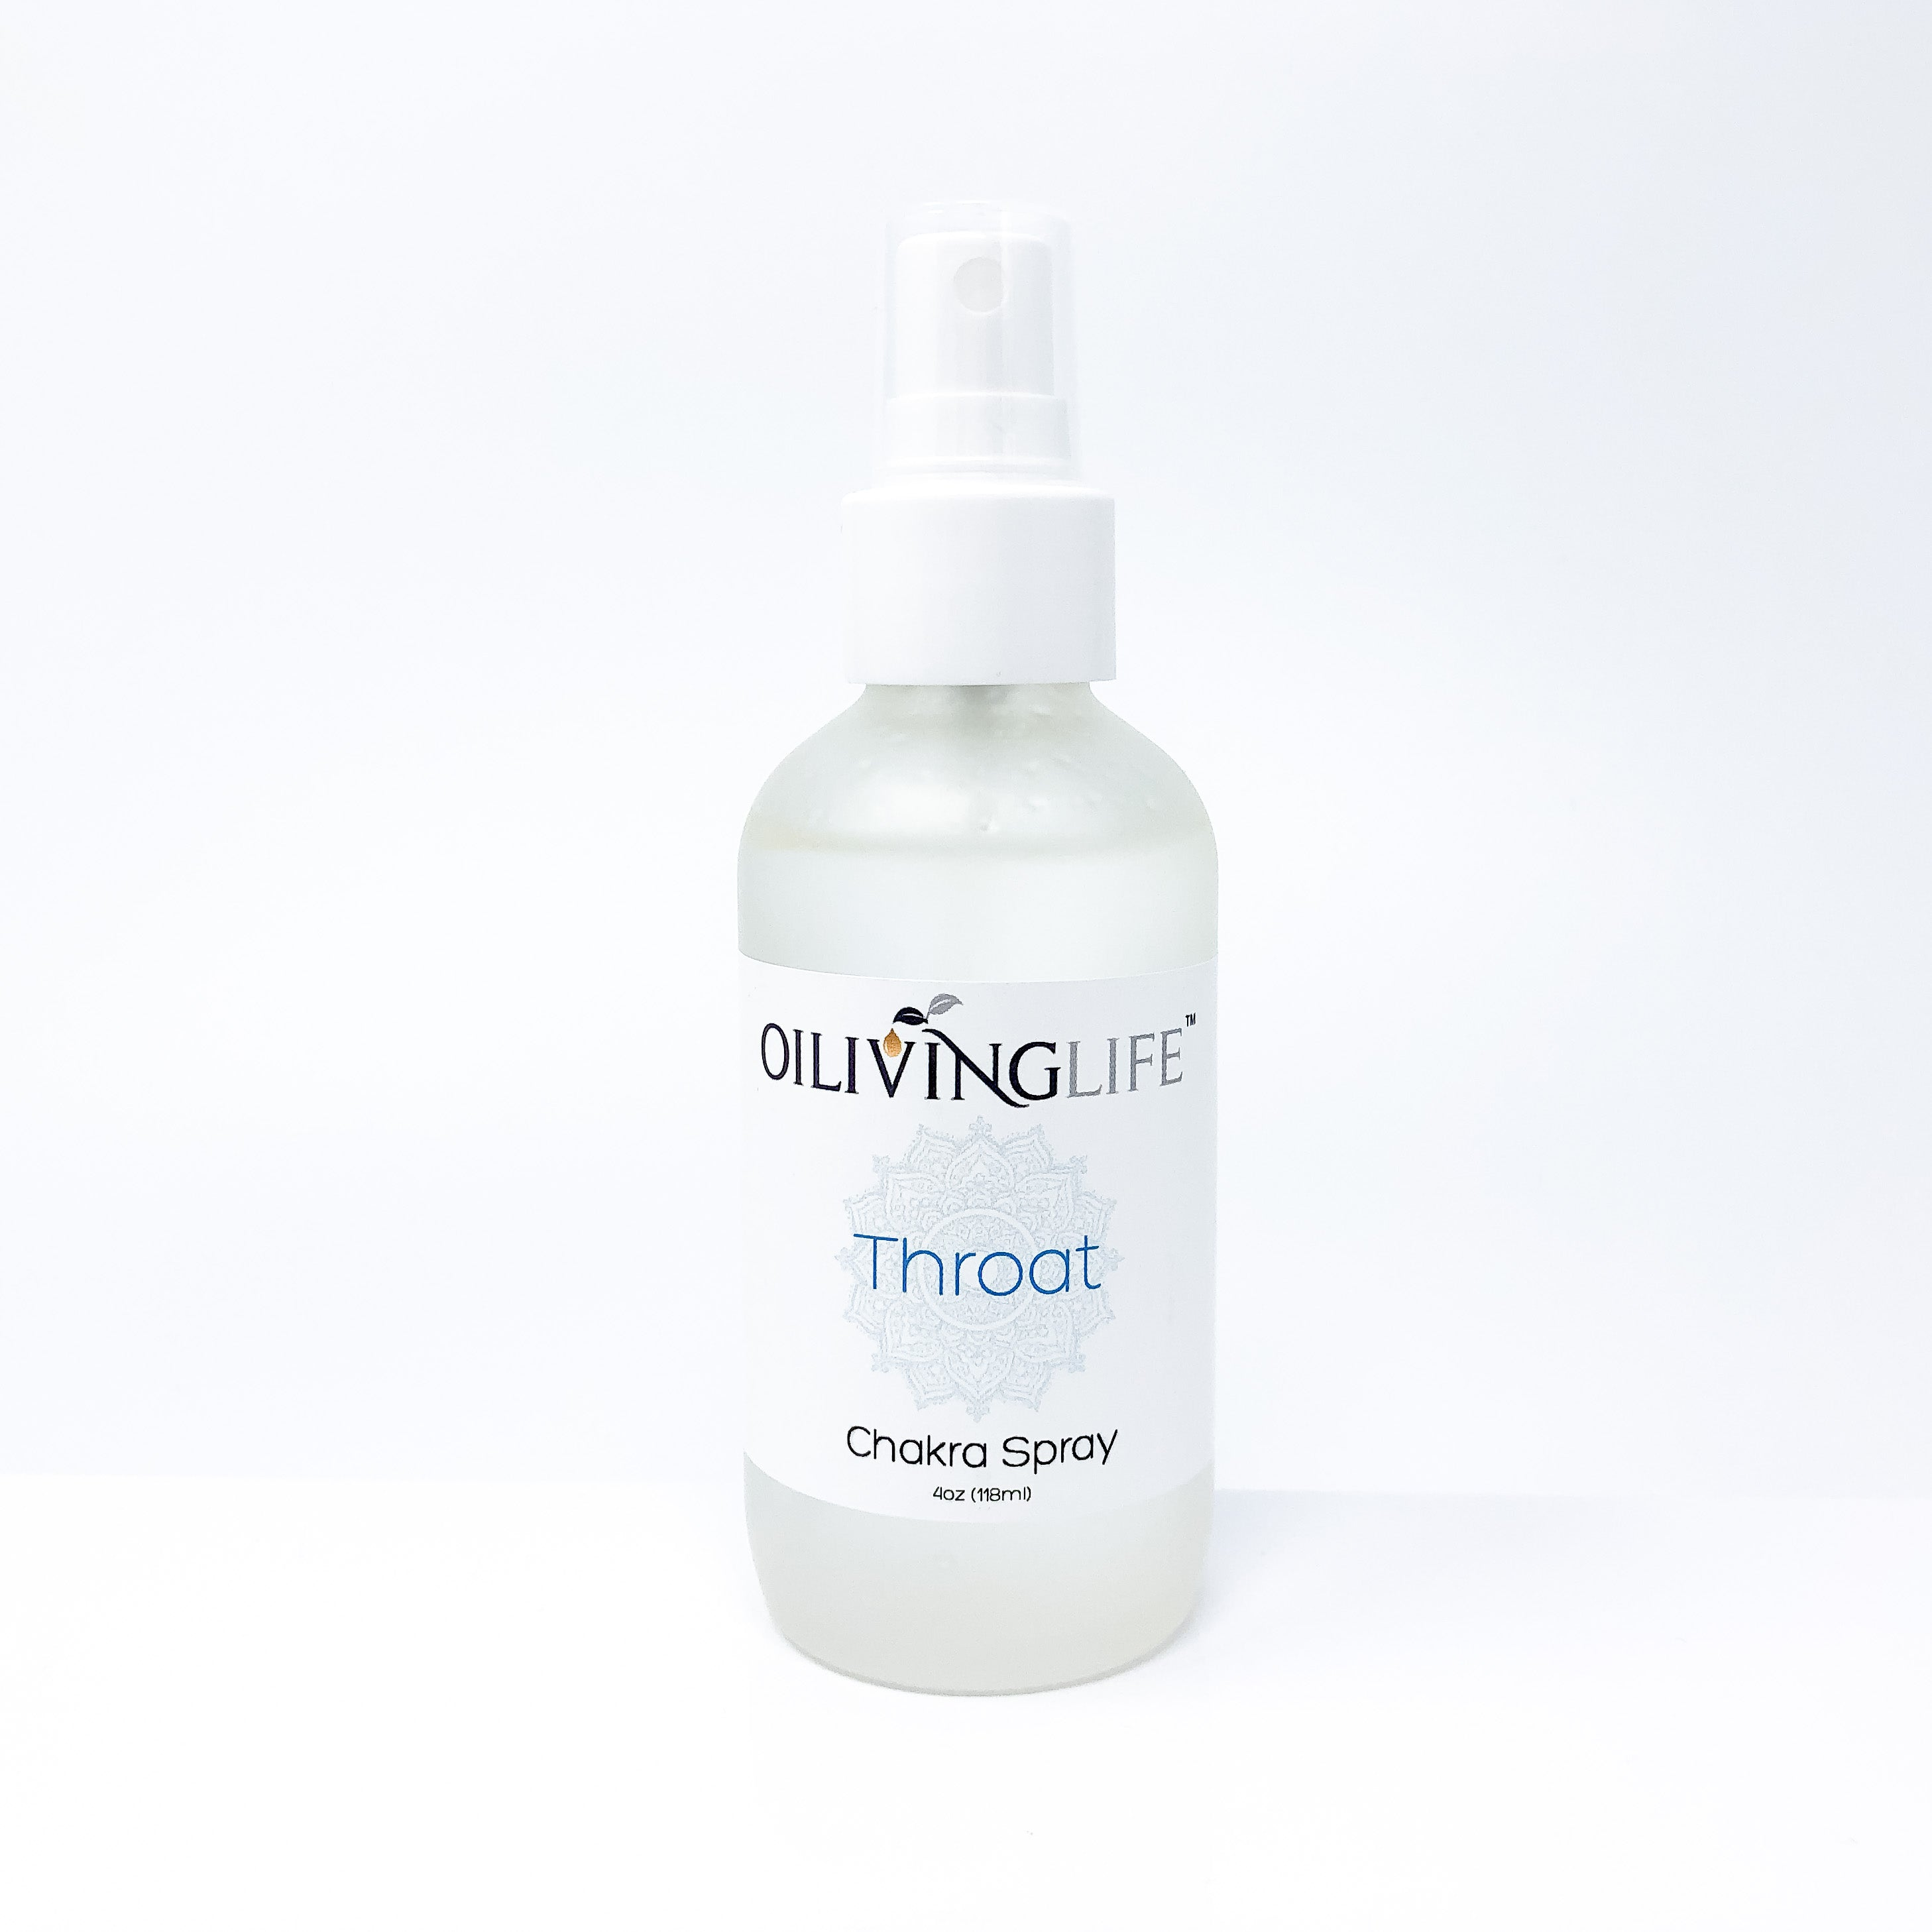 Throat Chakra Spray - OilivingLife